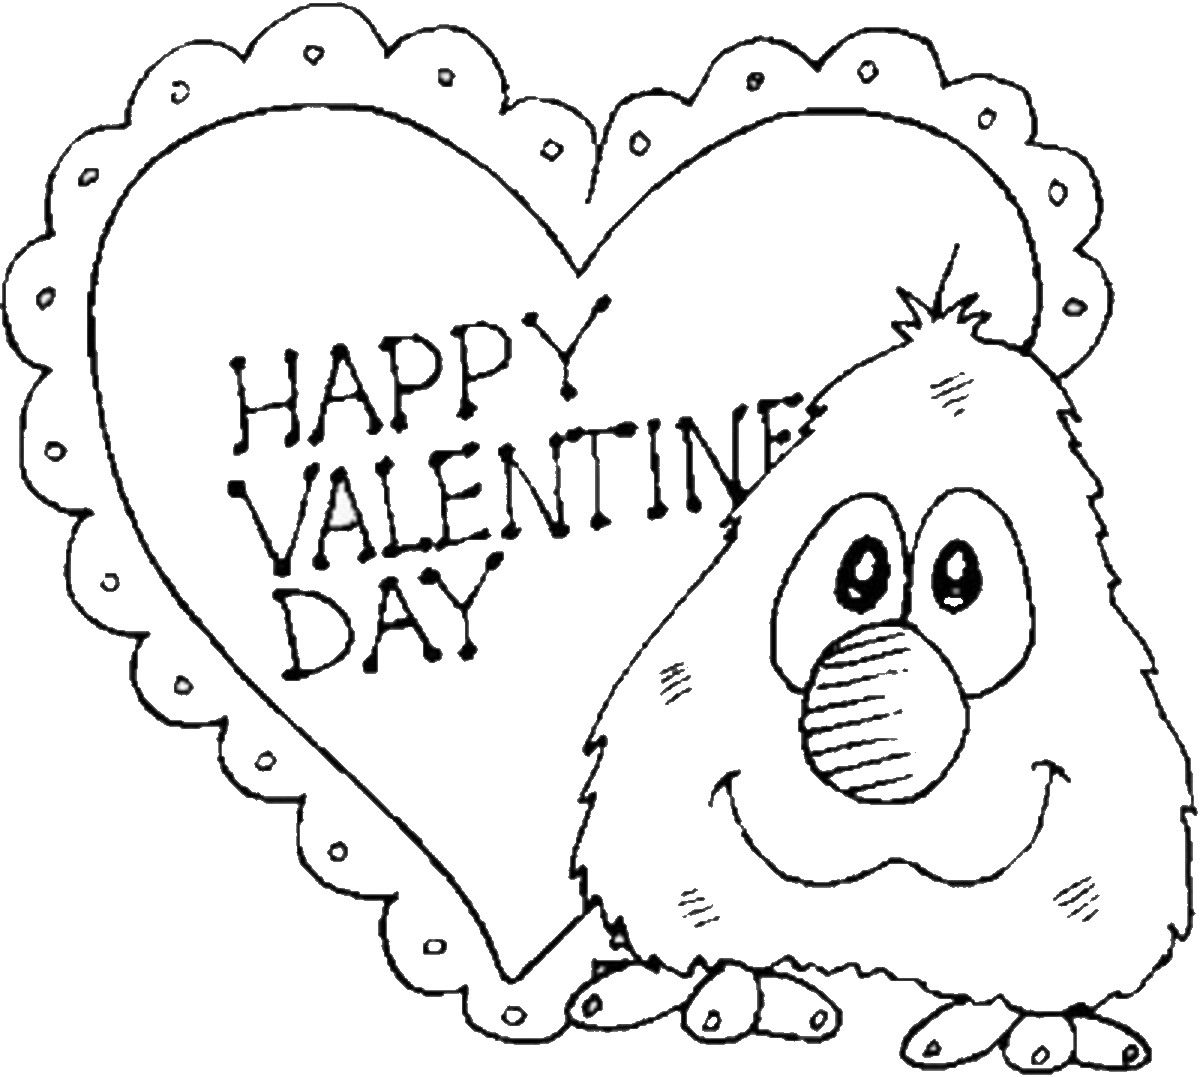 32+ Printable valentines coloring pages ideas in 2021